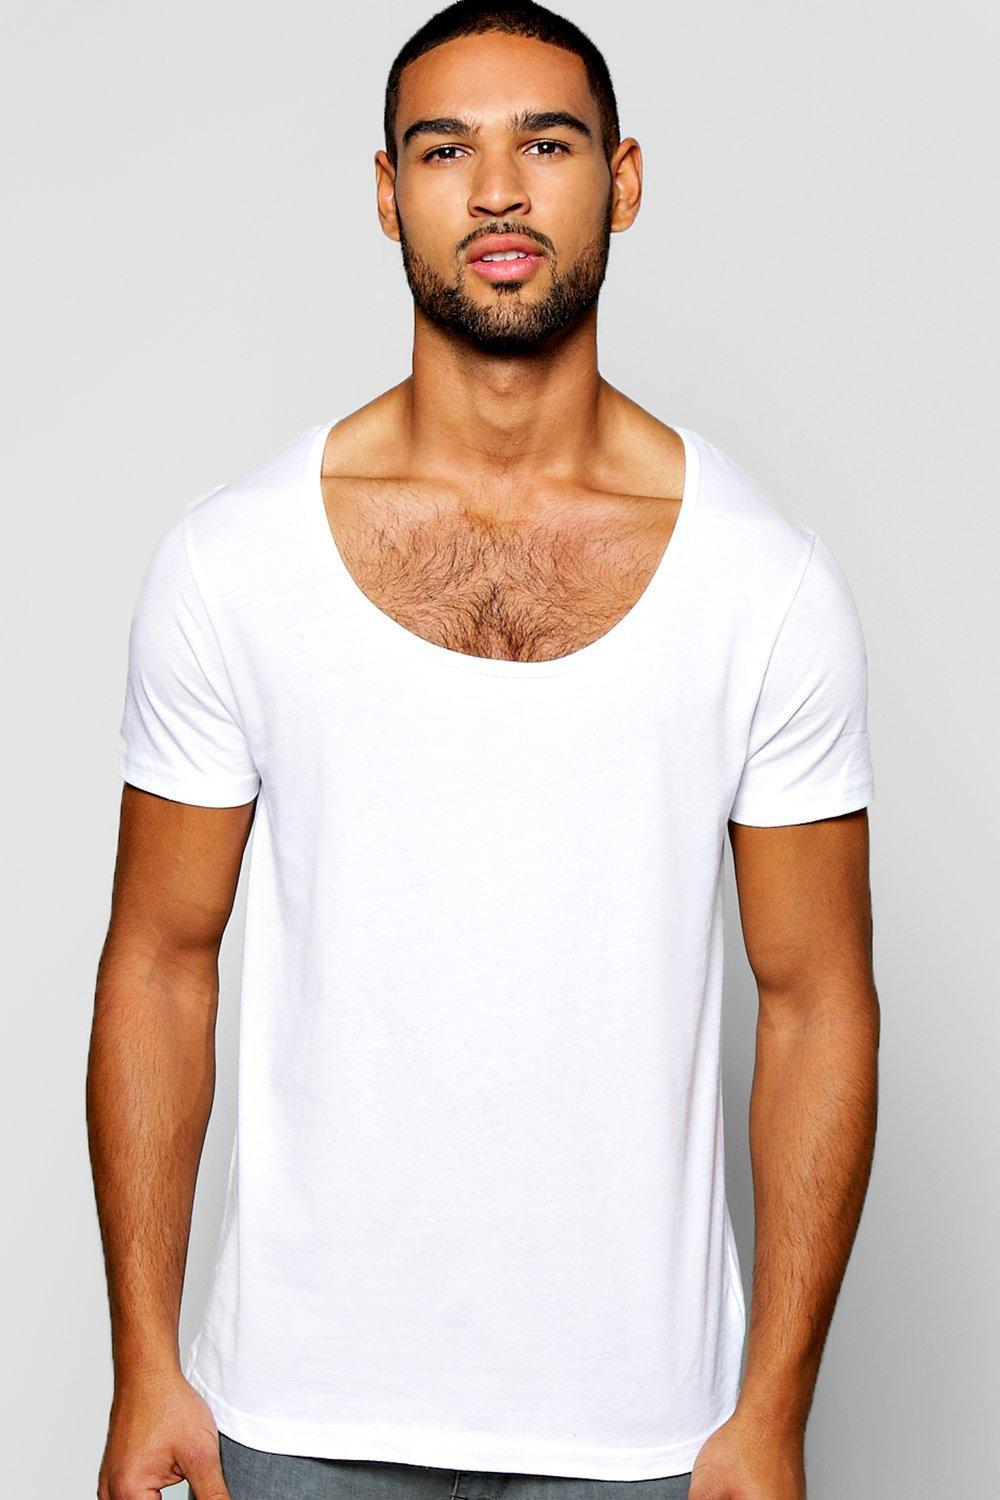 Find mens scoop neck t shirt at ShopStyle. Shop the latest collection of mens scoop neck t shirt from the most popular stores - all in one place.